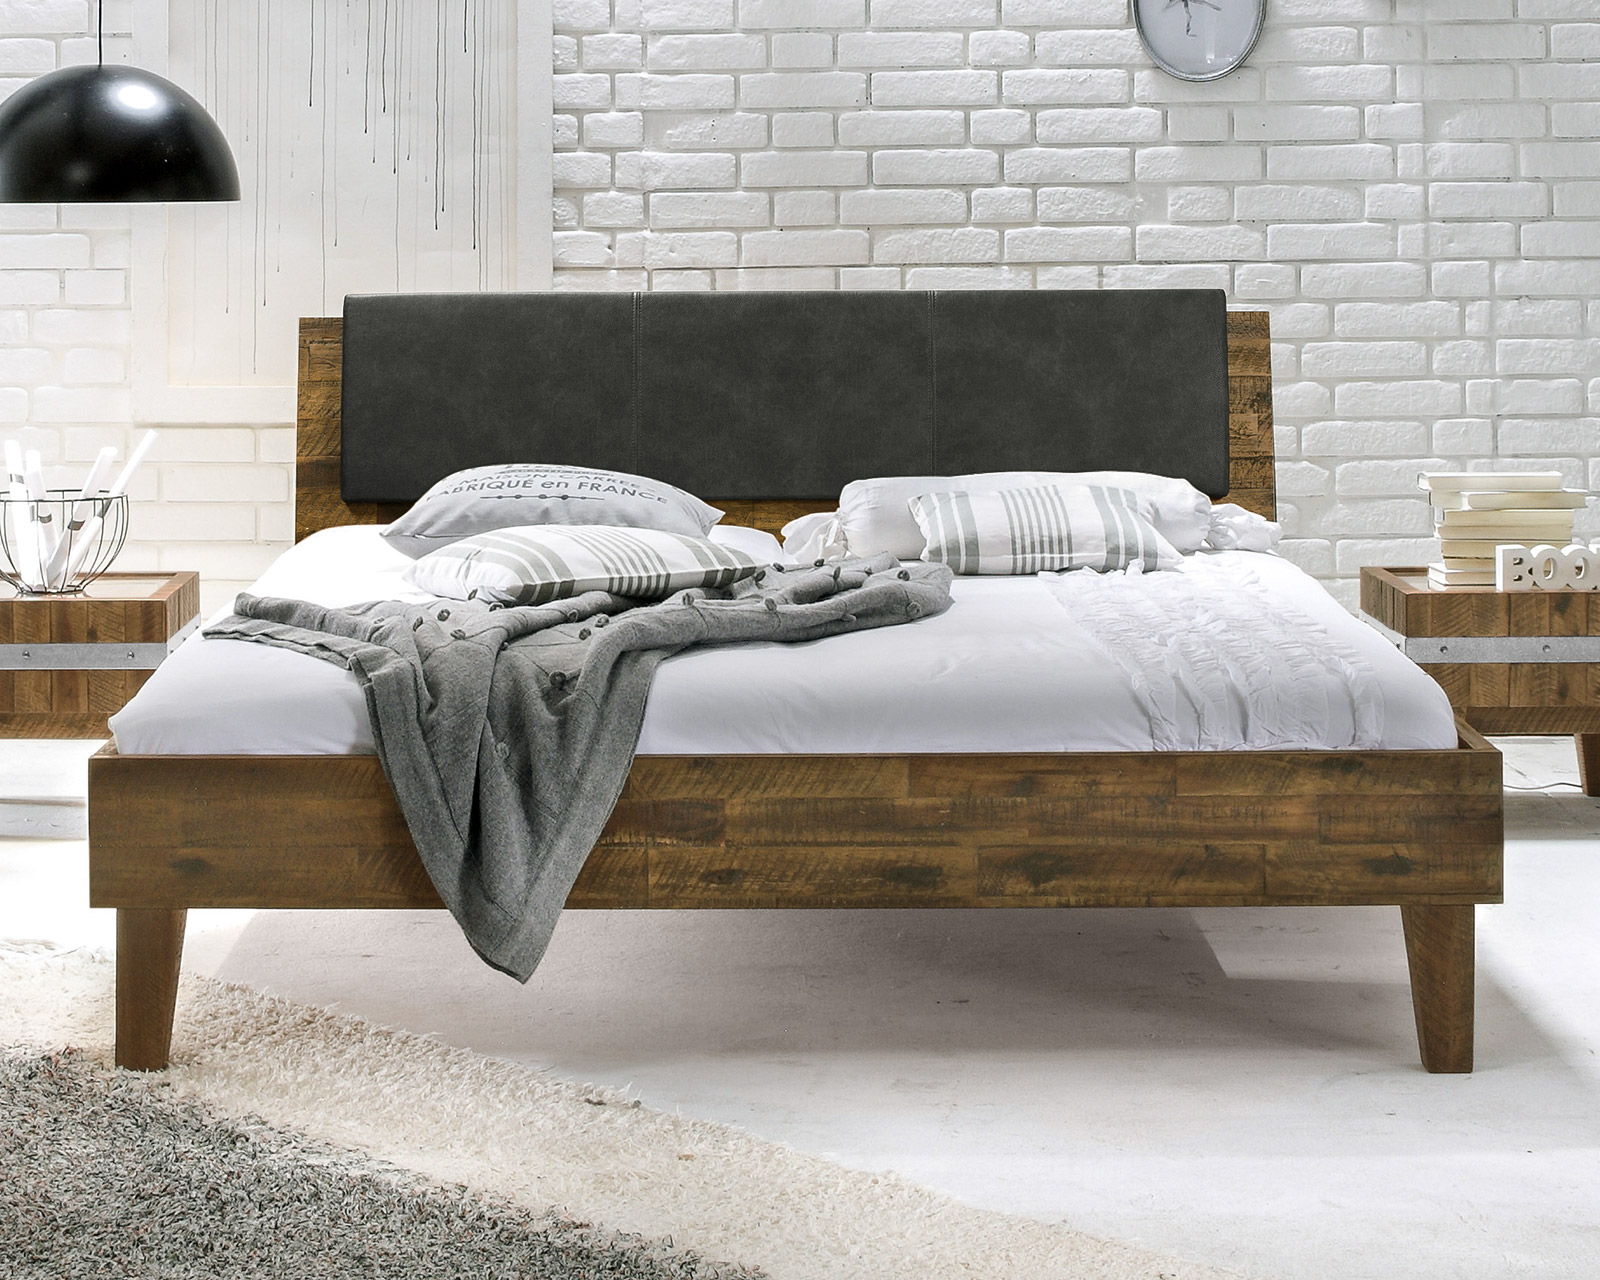 doppelbett im industrielook aus akazie paraiso. Black Bedroom Furniture Sets. Home Design Ideas